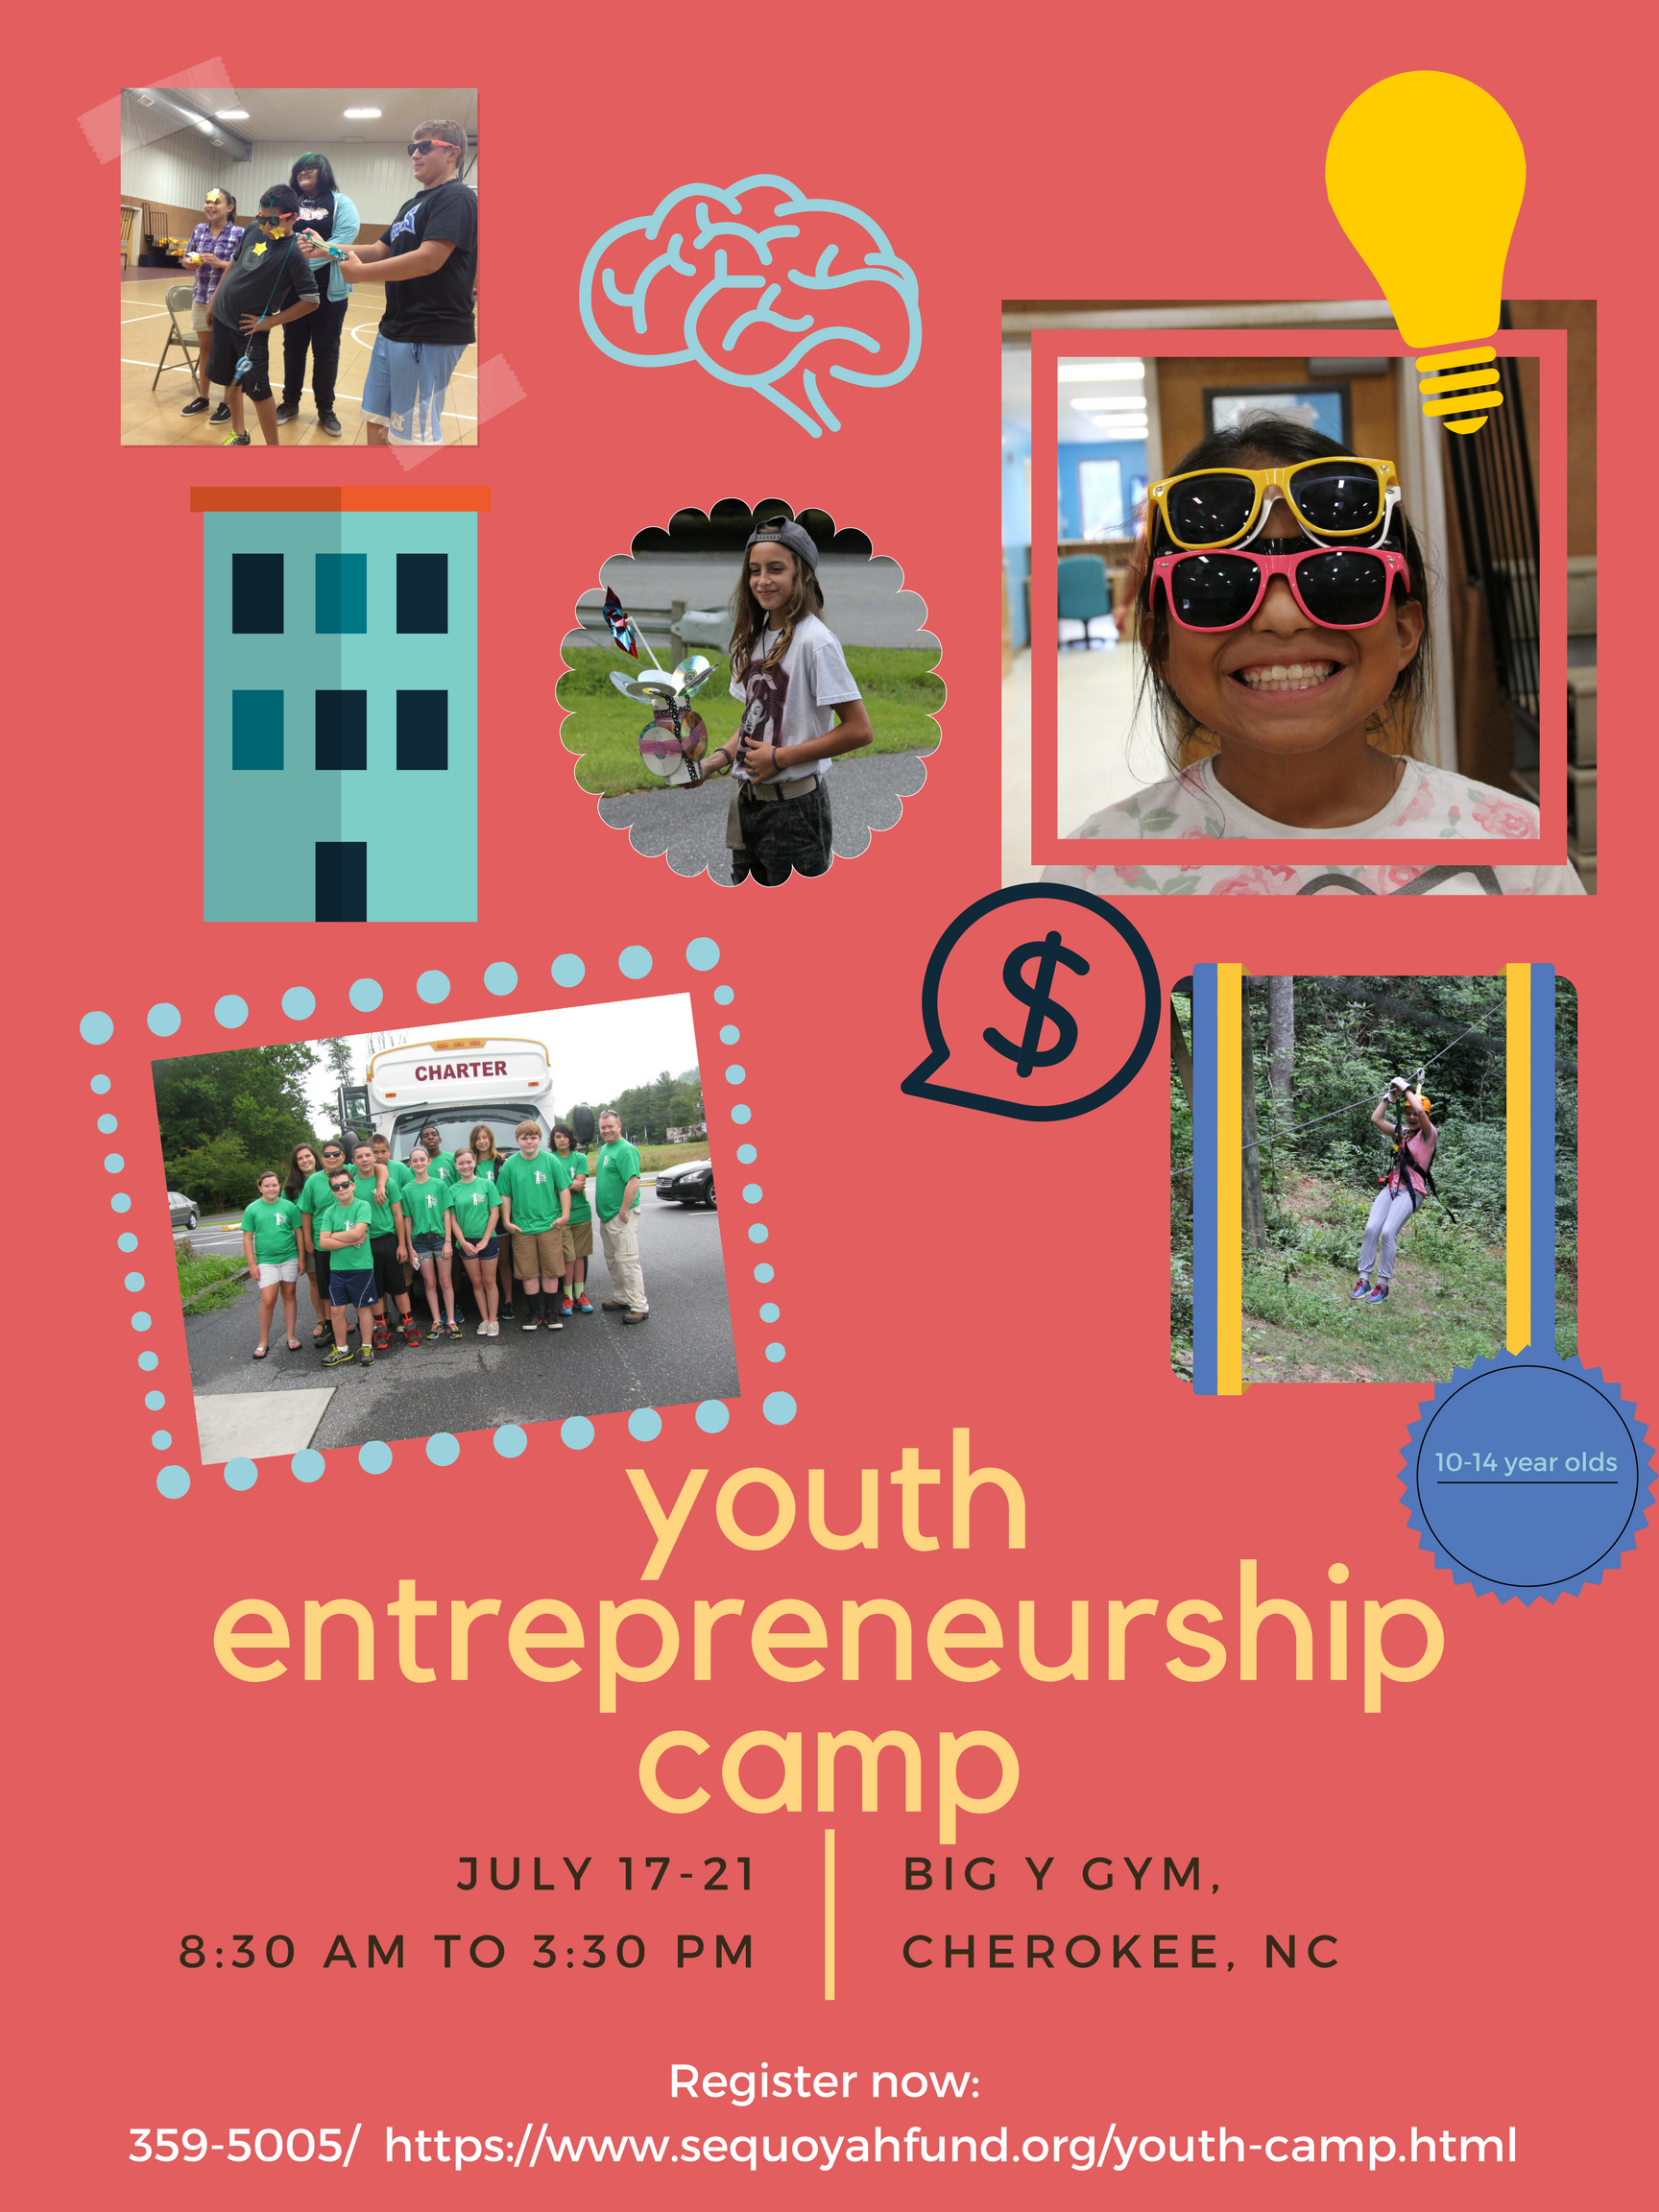 10-14 year old     Big Y Gym, Cherokee     July 17-21     FREE     Lunch provided every day     Field trip to Nantahala—Ziplining!     Learn about creating new products, selling, and money through hands-on activities.   Register at: https://www.sequoyahfund.org/youth-camp.html